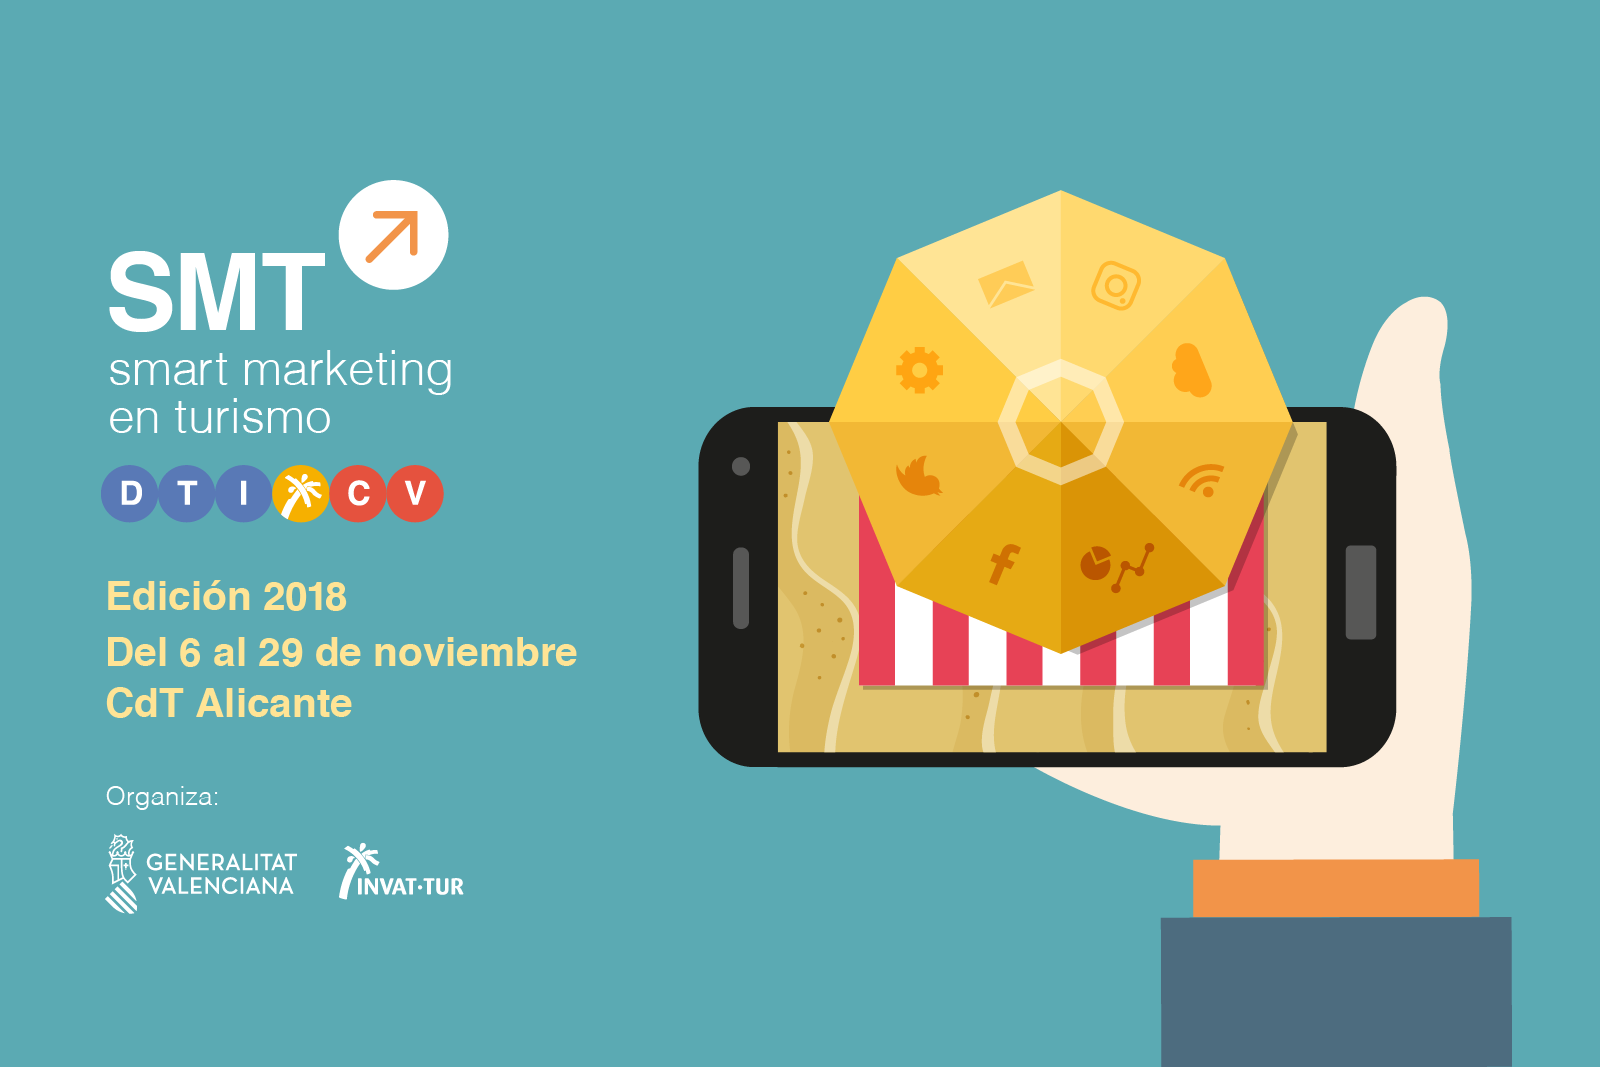 smartmarketing turismo alicante